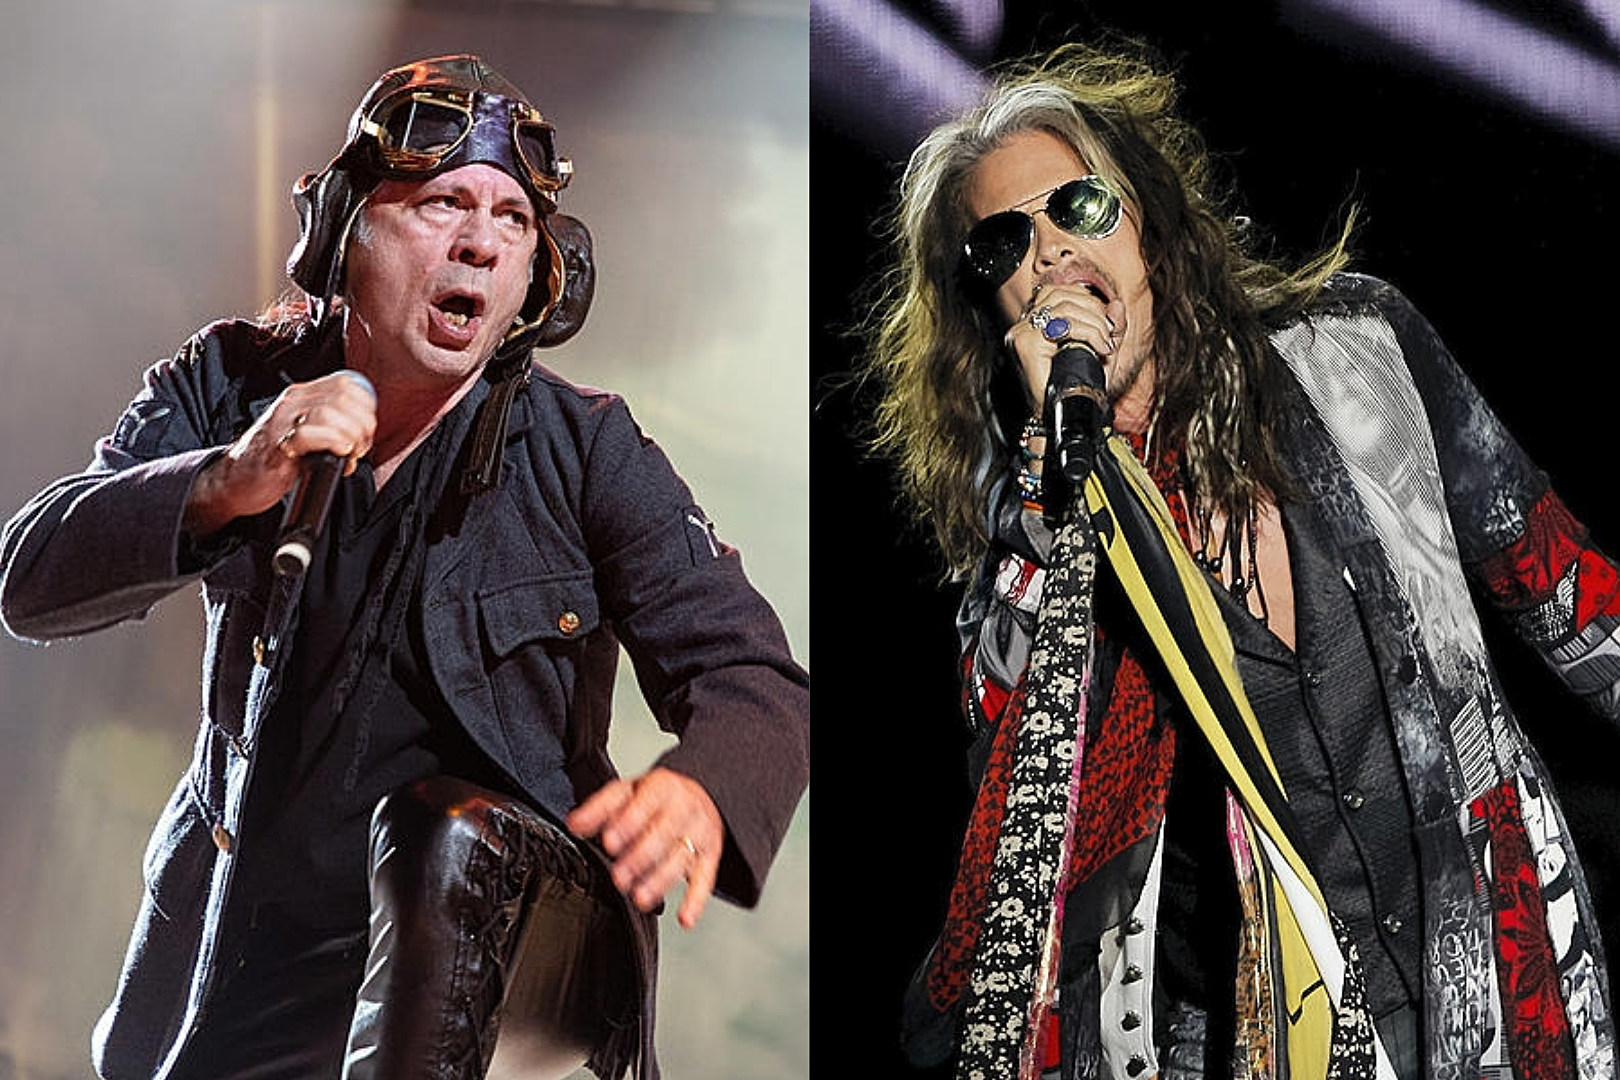 Iron Maiden + Aerosmith Among the Best-Selling Tours for Fall 2019